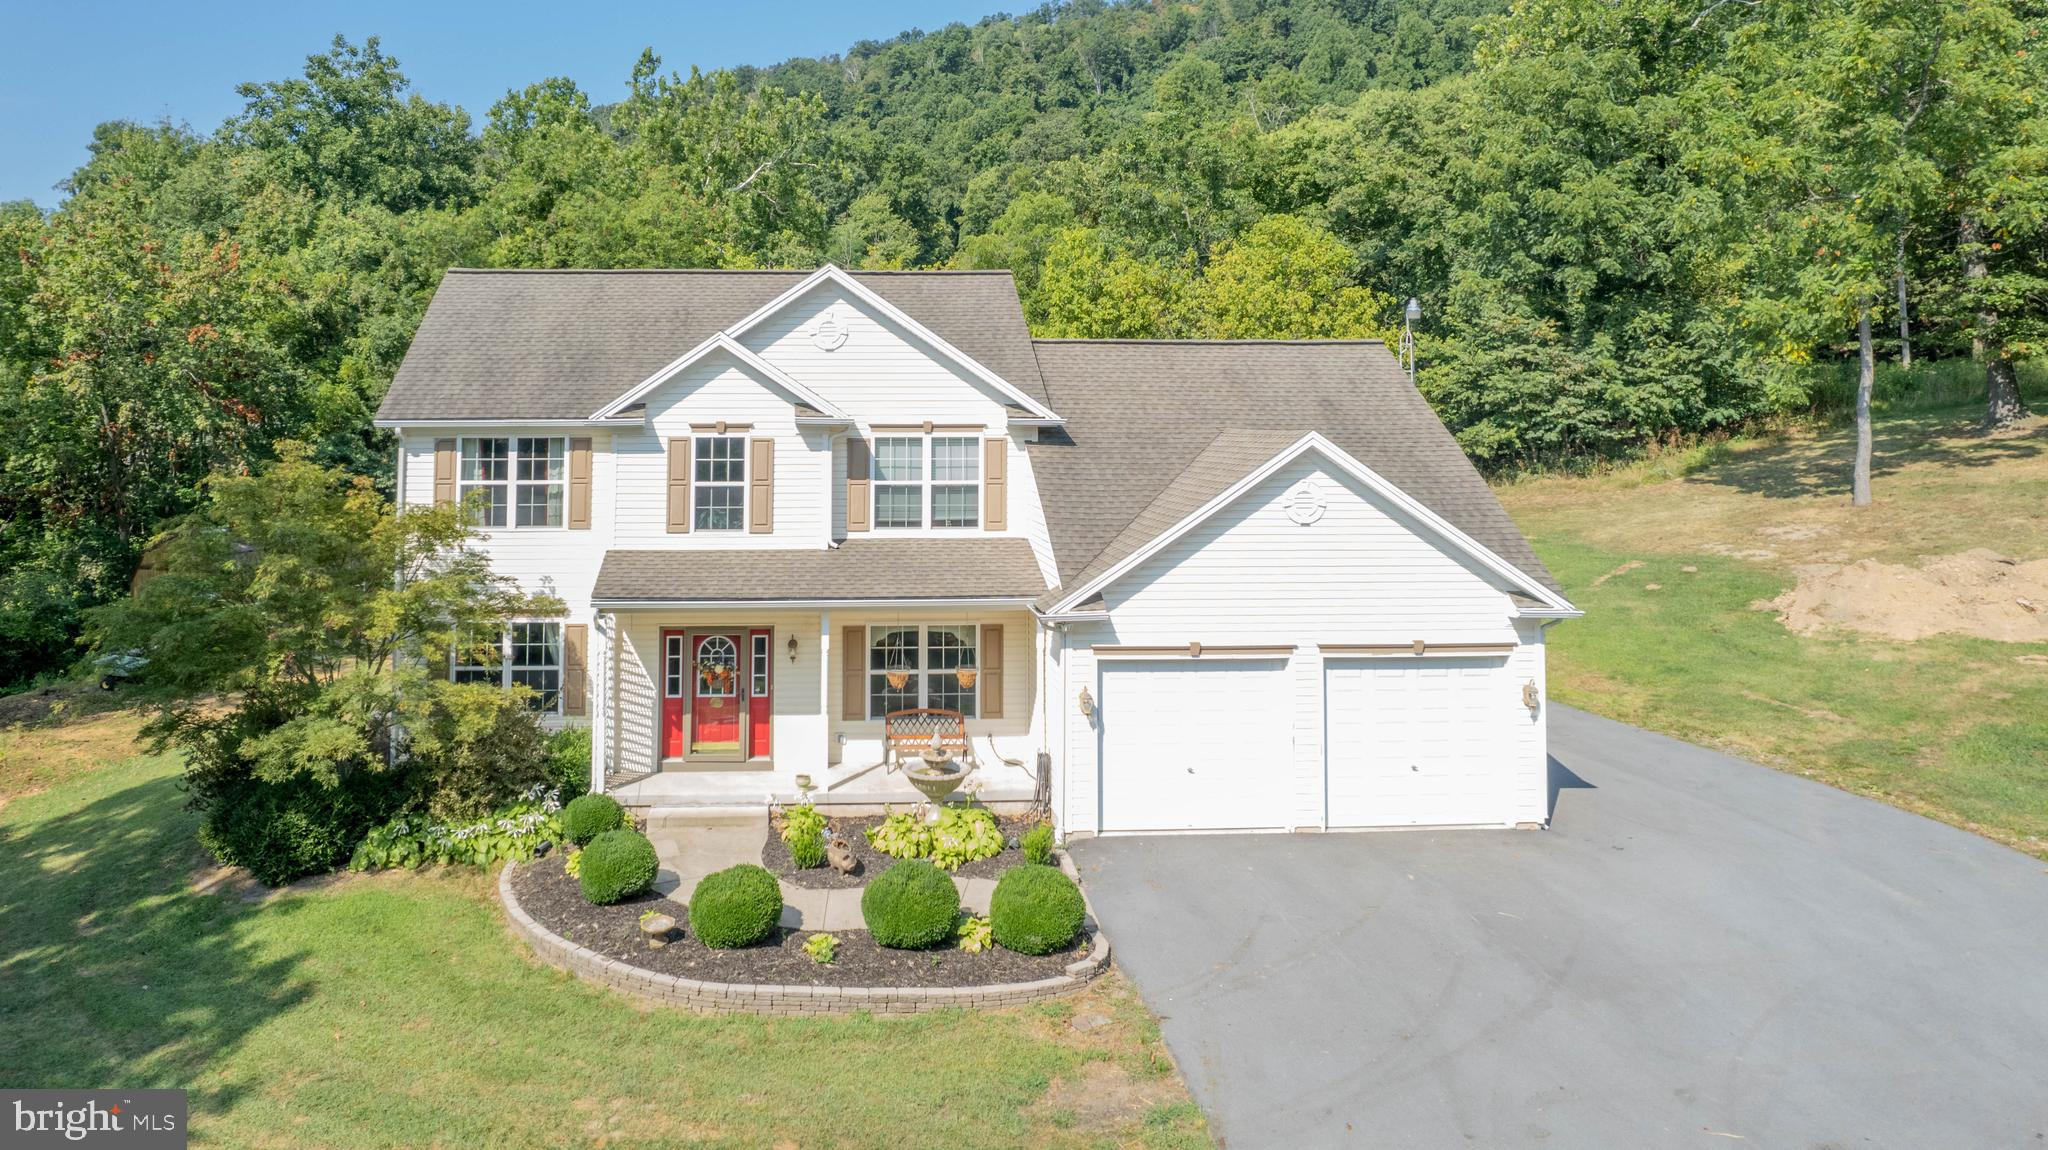 Every detail accounted for in this gorgeous 4BR/ 3A, over 3,500 SF home situated on 1.82 unrestricted acres. Fall in love with the quiet, country setting only a few miles from local hospital and amenities.  The layout and size create endless possibilities for raising a family, entertaining guests or retiring in luxury.   Open the front door to a grand two story entranceway with custom hardwood floors and stairwell.  To your  right, retreat to your own home office or library complete with French doors making it an opportunity for a main floor bedroom if needed.  To your left, the stunning formal living room is full of natural light and space to create family memories.  Straight ahead you will find an amazing open floor plan perfect for Sunday games--The artisan kitchen with granite counters and bar open to an eat-in sunroom area and the family room.   The charm of the family room starts with the custom inlays on the hardwood floors and is punctuated by the mantled gas fireplace. You will love the energy efficient appliances, HVAC system, windows, and insulation making this home as cozy as it is cost-effective.  Custom lighting and speakers are just a few of the details not to miss on the main floor.   Enjoy a  well finished two car garage, laundry room, pantry , guest bathroom and many closets on this level as well.  Upstairs boasts the bedrooms of which each have large closets and a spacious floor plan.   The owner's suite shows off with oversized walk in closet and luxury spa bathroom complete with soaking tub and stand up shower.   Gorgeous custom window treatments throughout the home convey.   The fully finished basement has numerous coves for storage as well as a huge unfinished space with ample room for a workshop or storage.   The finished rooms will be the hang out spot for movies, art projects, fitness and so much more.  Once outside you can bird watch, sip coffee and enjoy peace on the custom patio.   Beautifully manicured, the yard is a treasure trove of o